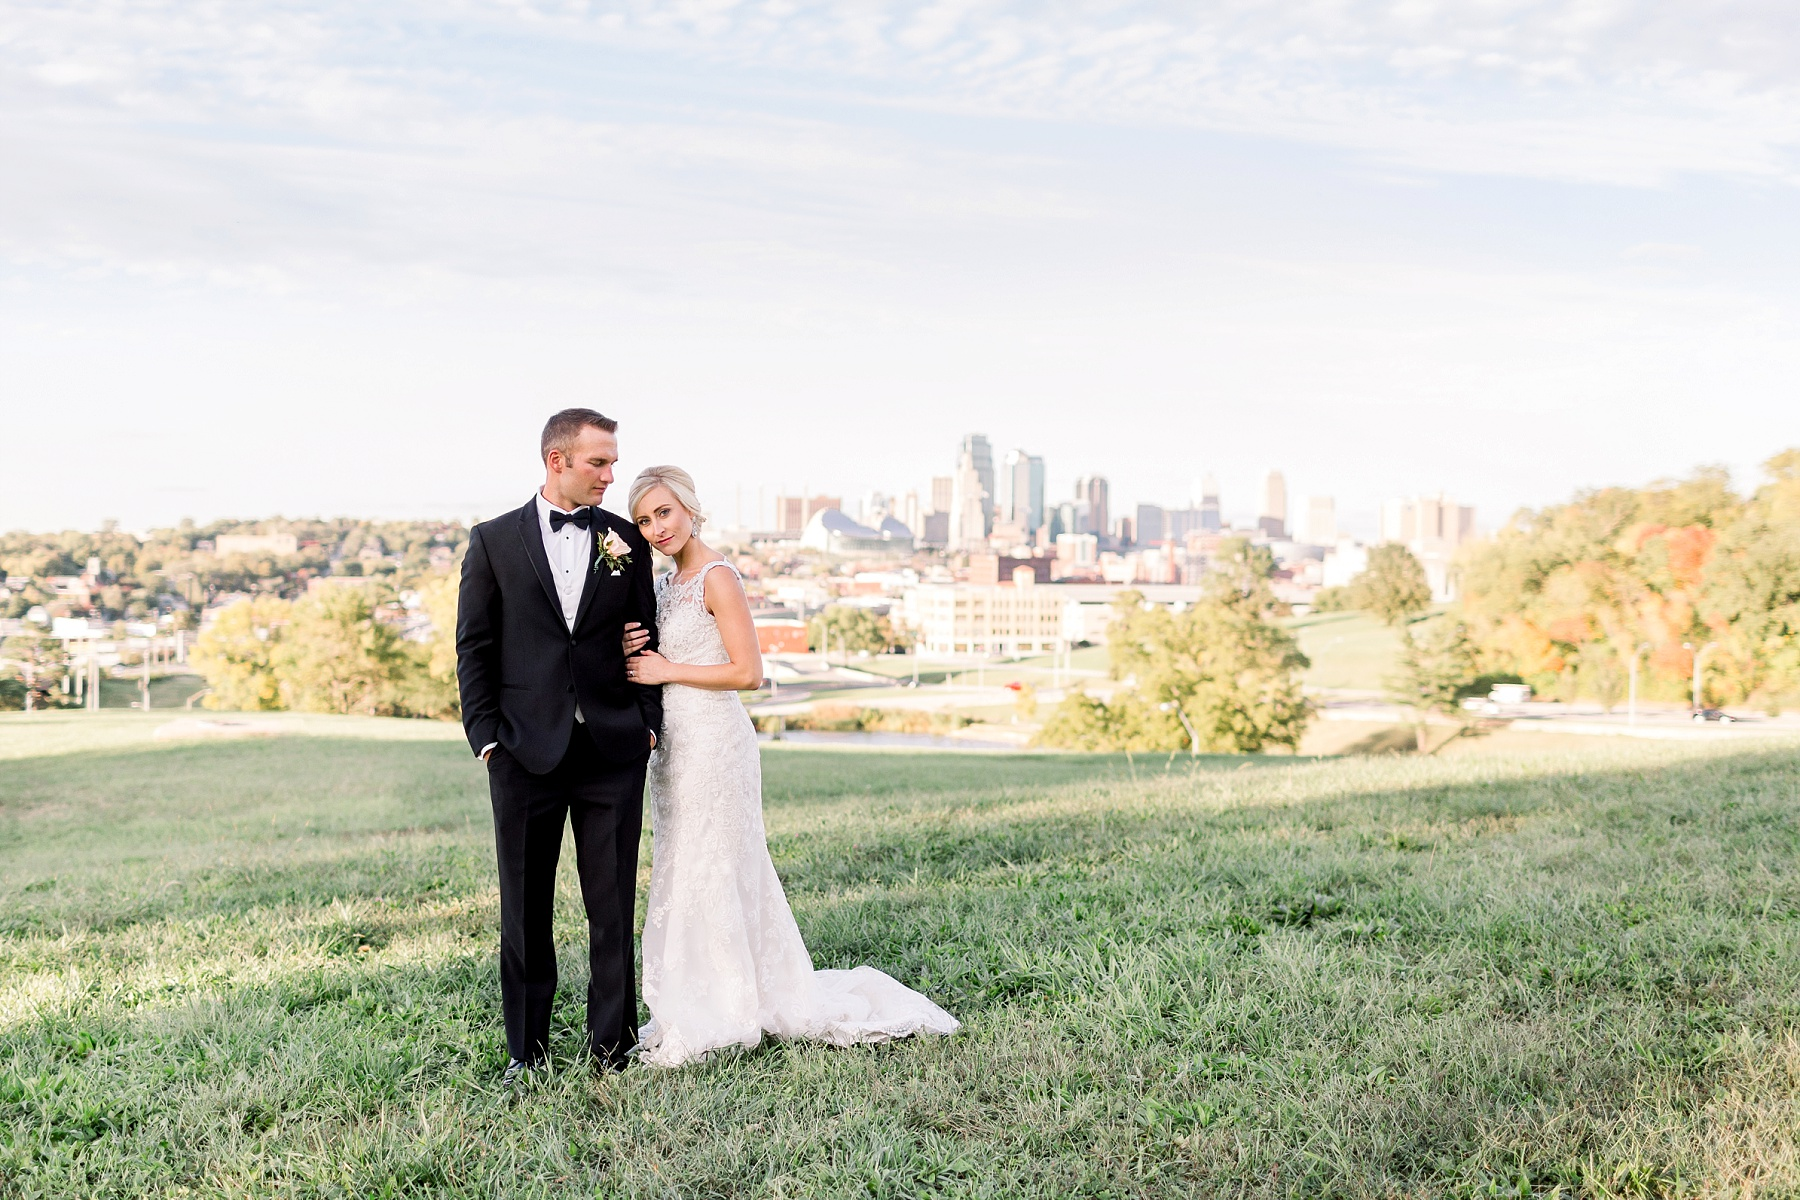 adventurous-authentic-wedding-engagement-photography-kansas-city-elizabeth-ladean-photo_5536.jpg